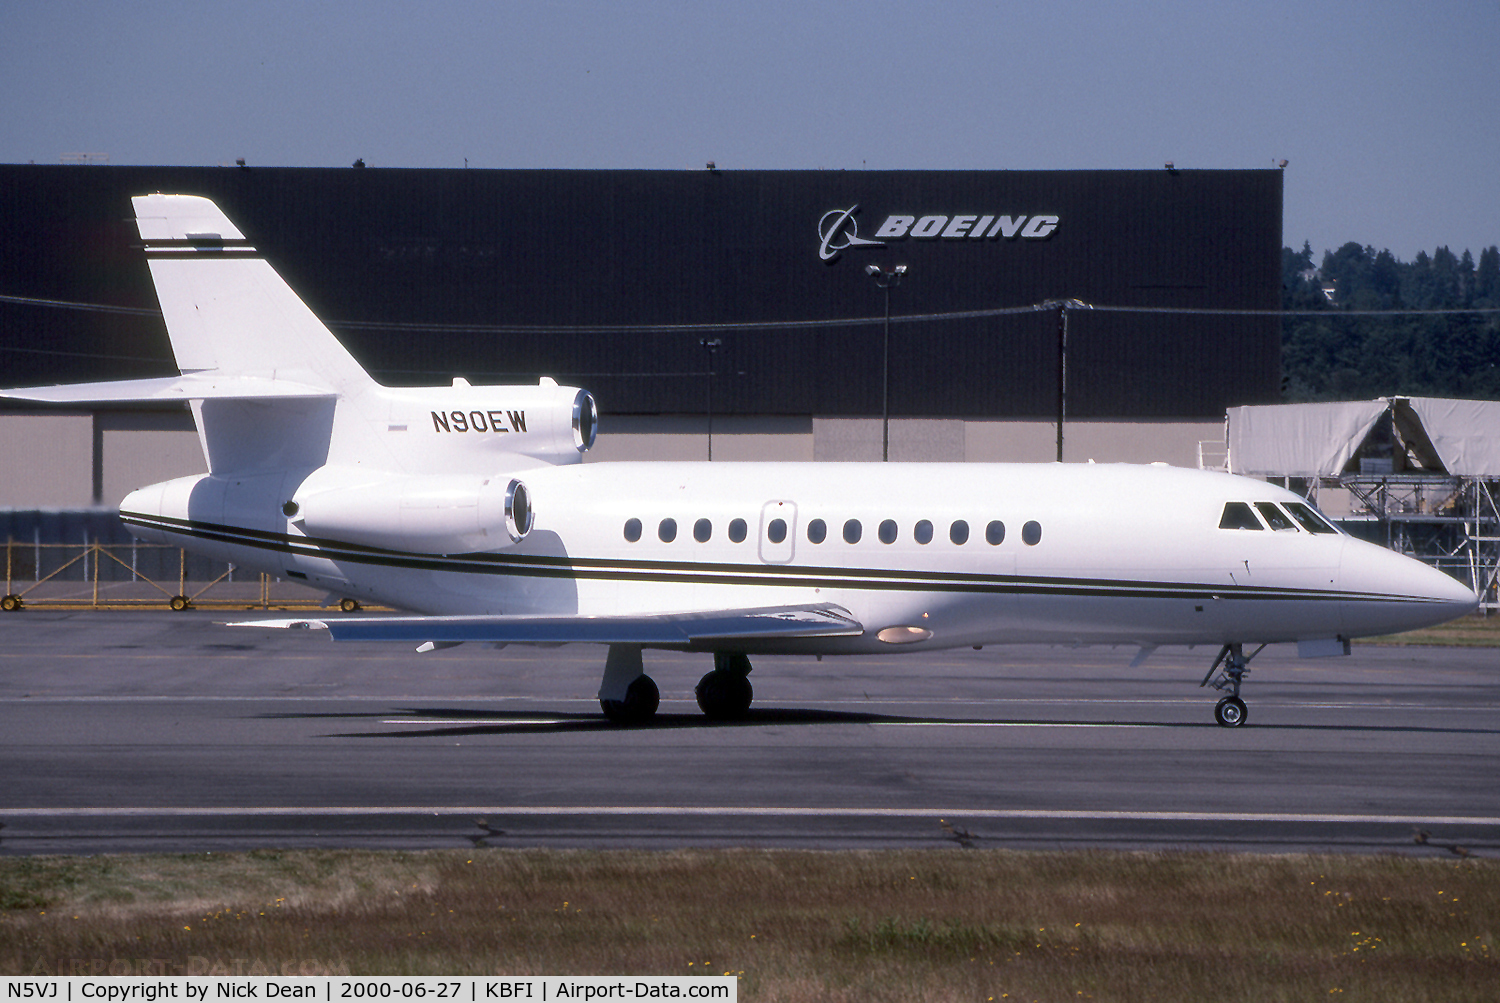 N5VJ, 1987 Dassault-Breguet Falcon (Mystere) 900 C/N 27, Seen here as N90EW this airframe is currently registered N5VJ as posted